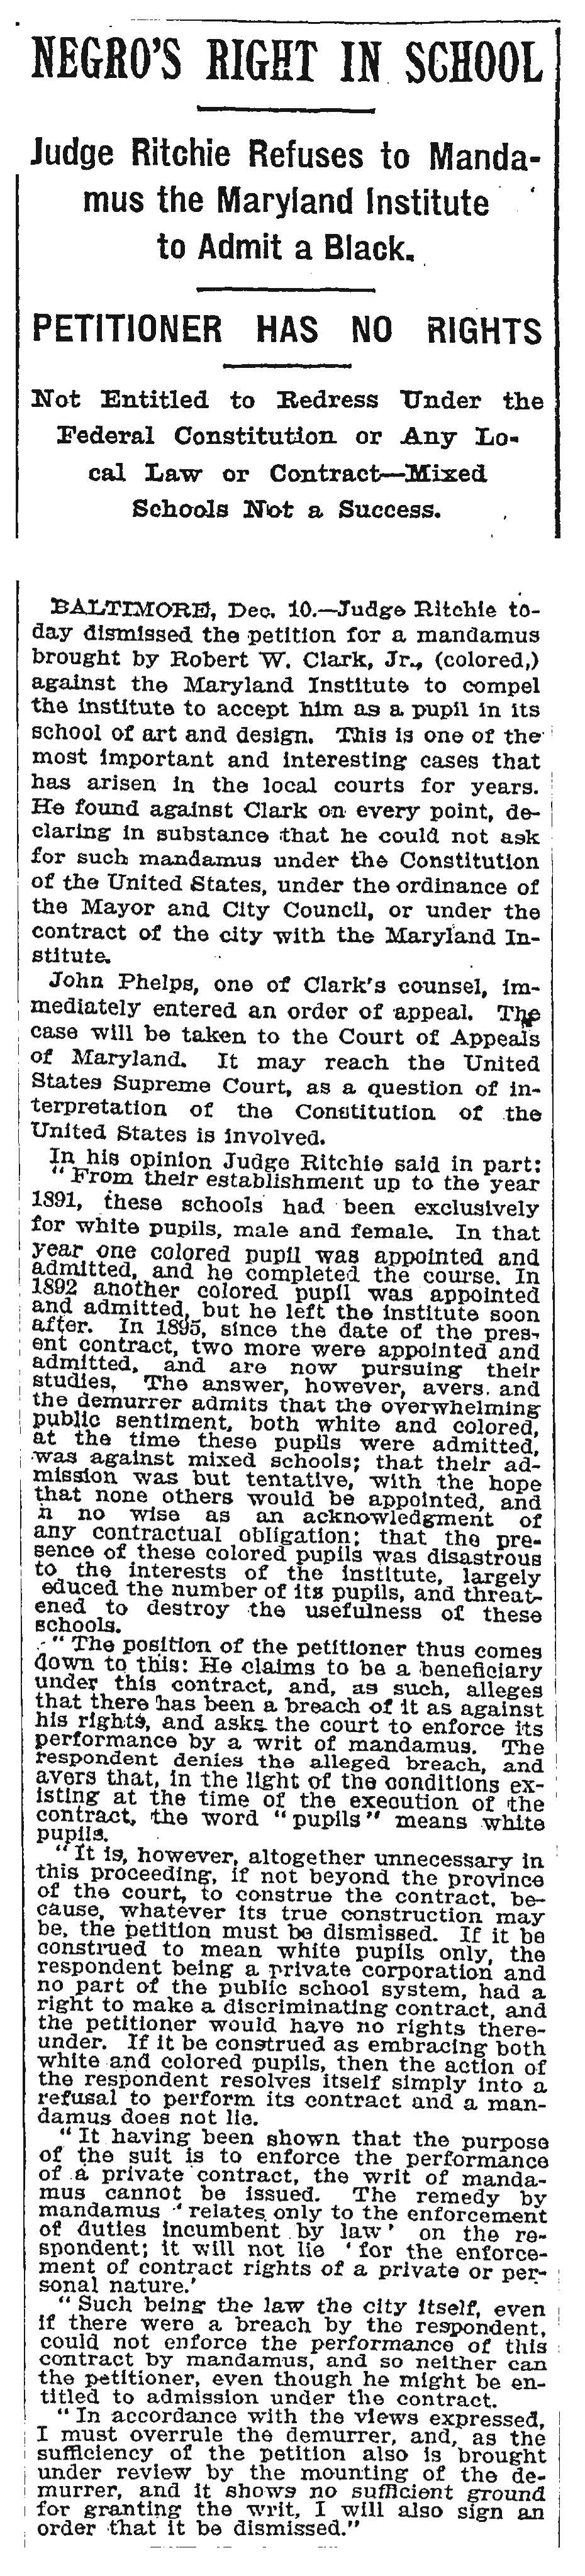 1897-12-11-NEGRO'S_RIGHT_IN_SCHOOL_JUDGE.jpg